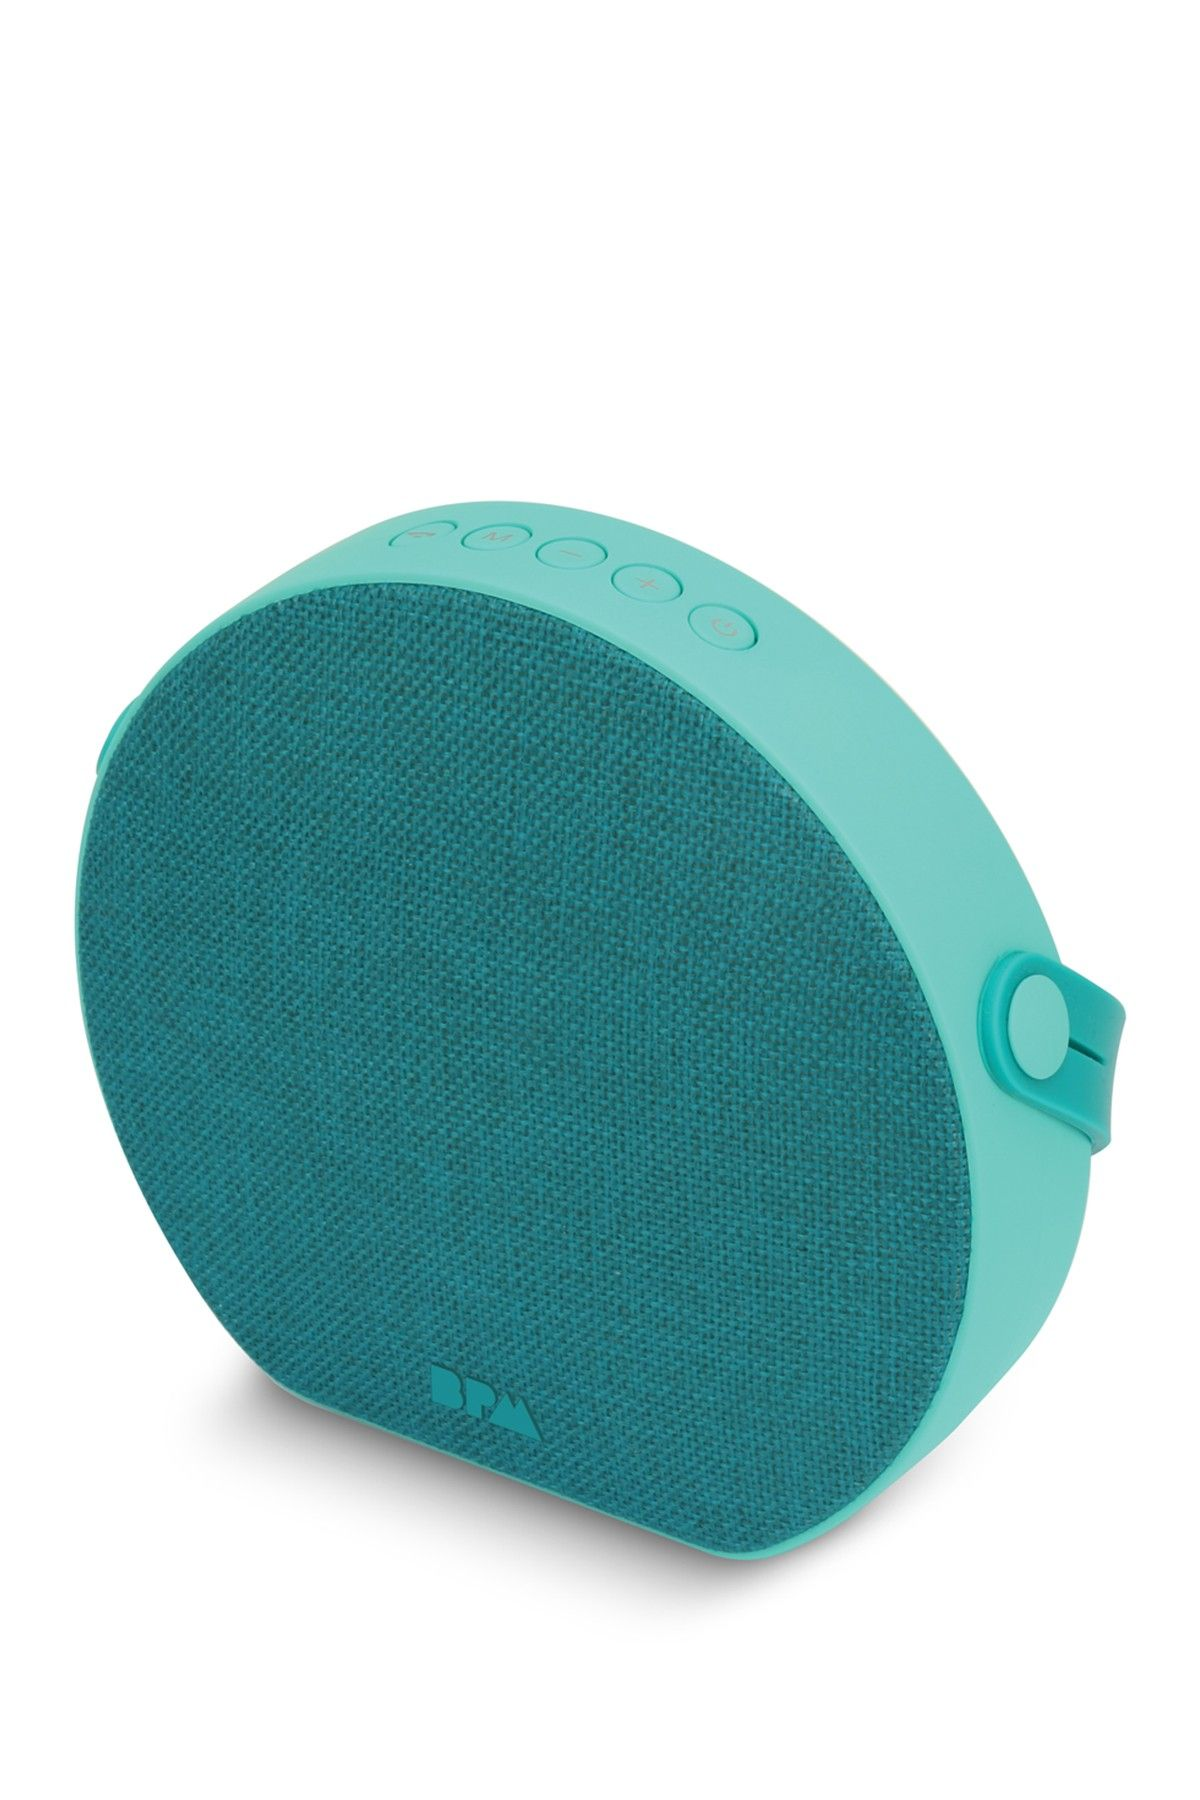 iHome BPM Bluetooth Portable Fashion Speaker - Teal | Bed Bath Room ...